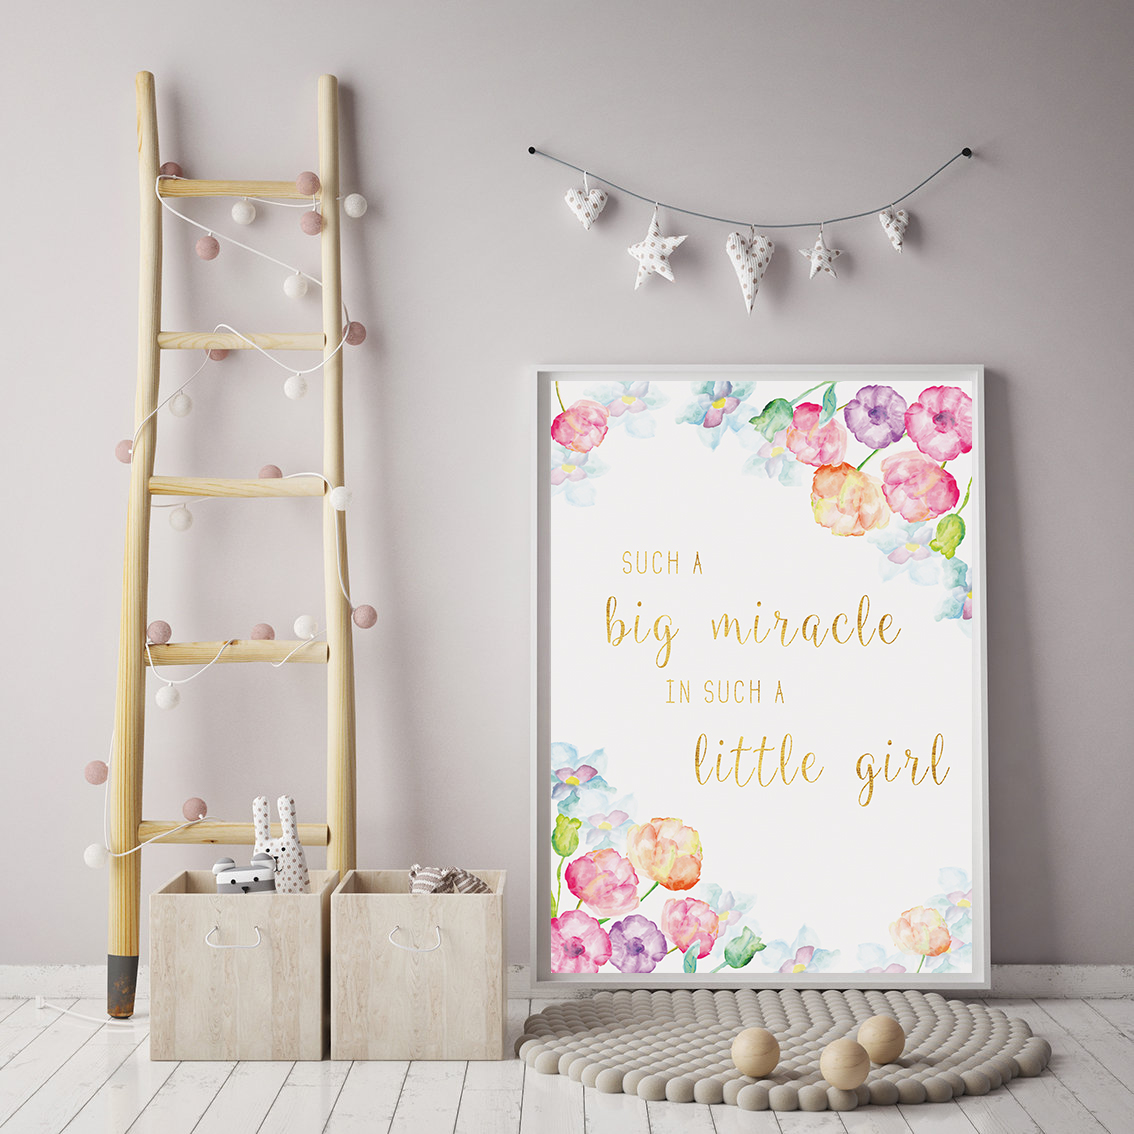 Downloadable Prints for Nursery, Girls Room Wall Prints example image 2